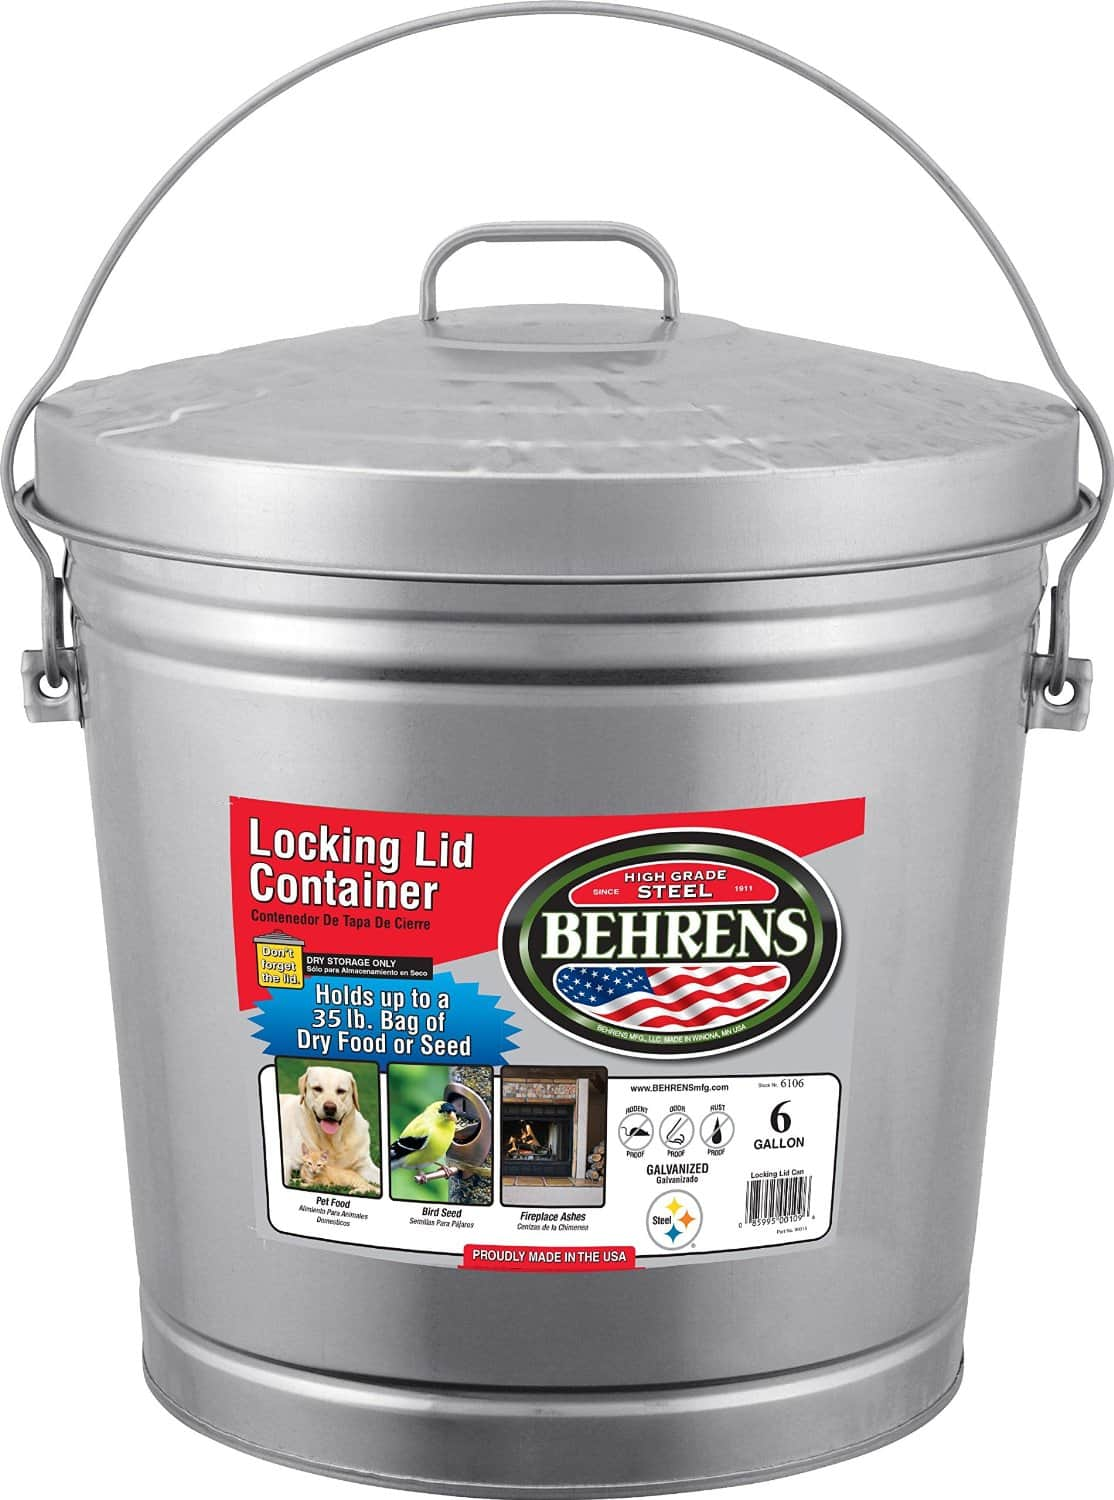 Behrens 6-Gallon Locking Lid Can$10.56 for Amazon Prime members